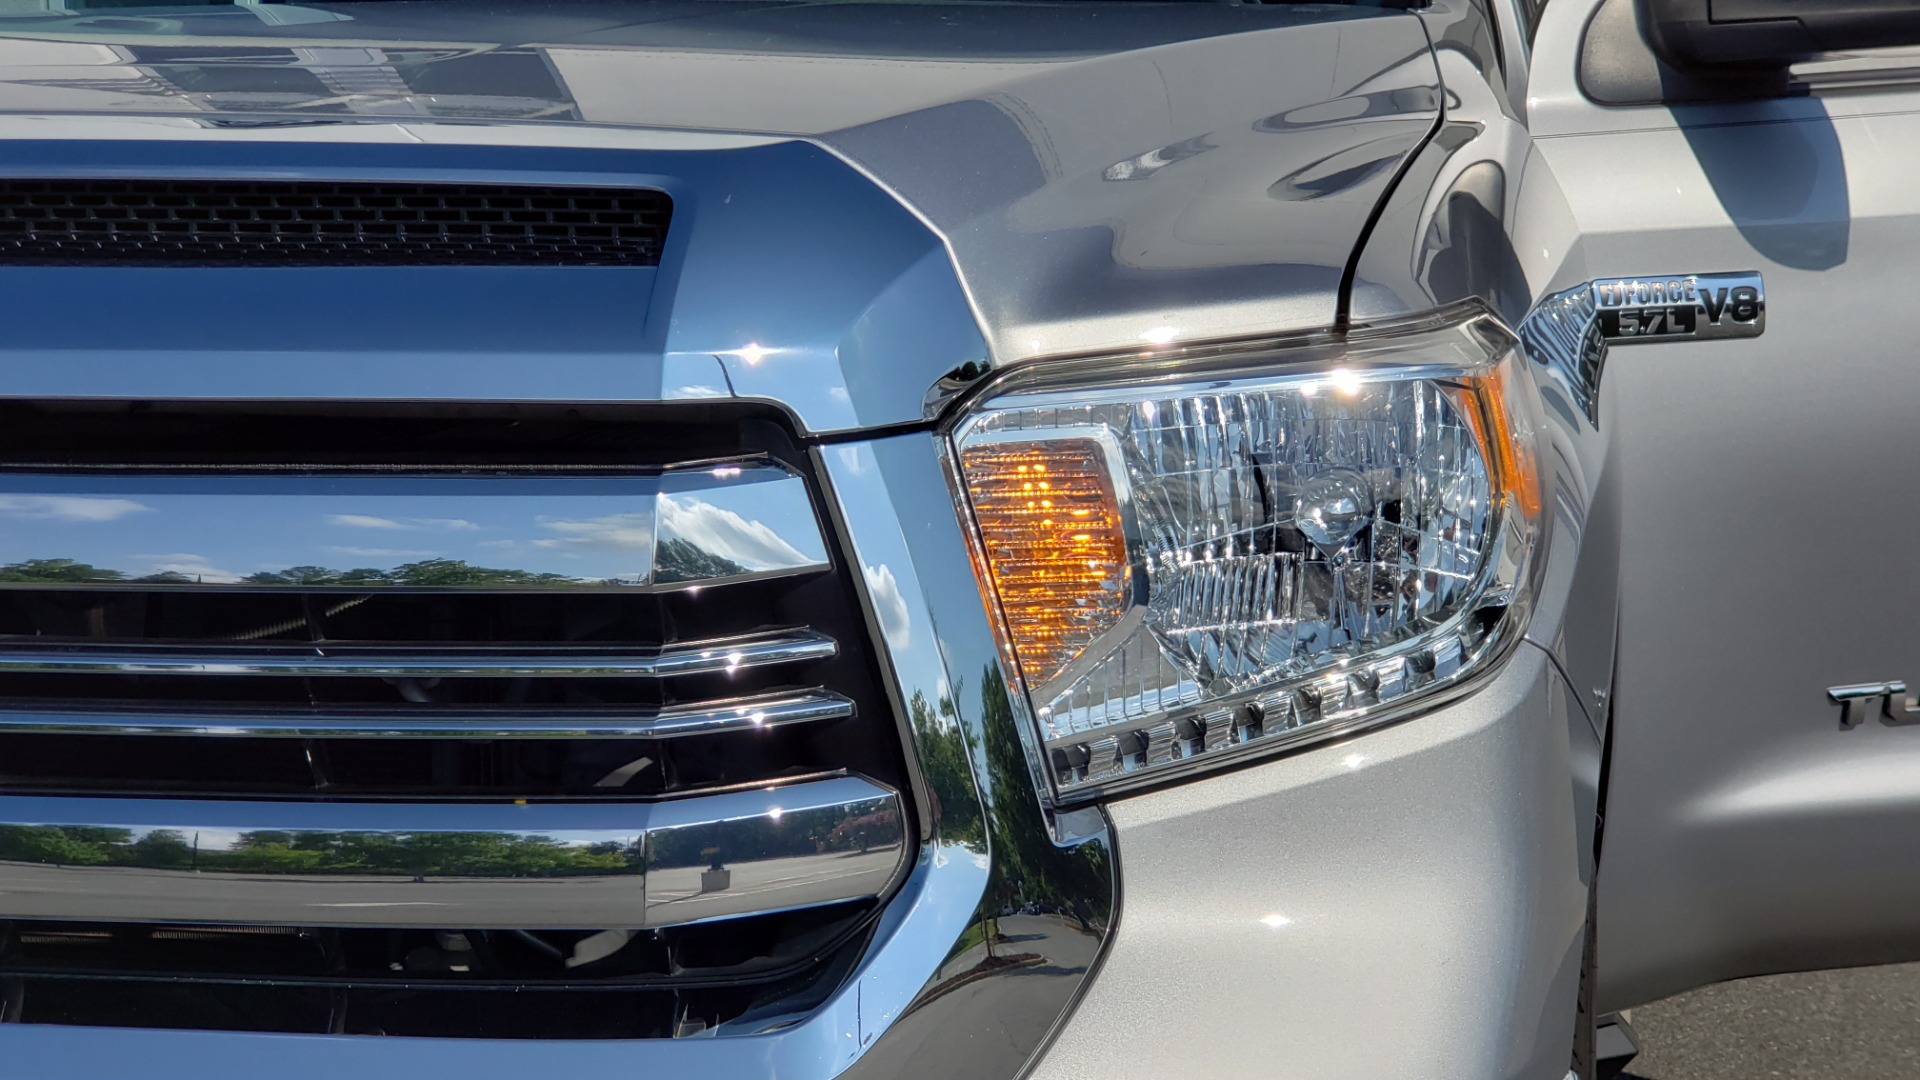 Used 2017 Toyota TUNDRA 4WD SR5 CREWMAX / 5.7L V8 / 6-SPD AUTO / NAV / REARVIEW for sale $44,395 at Formula Imports in Charlotte NC 28227 24